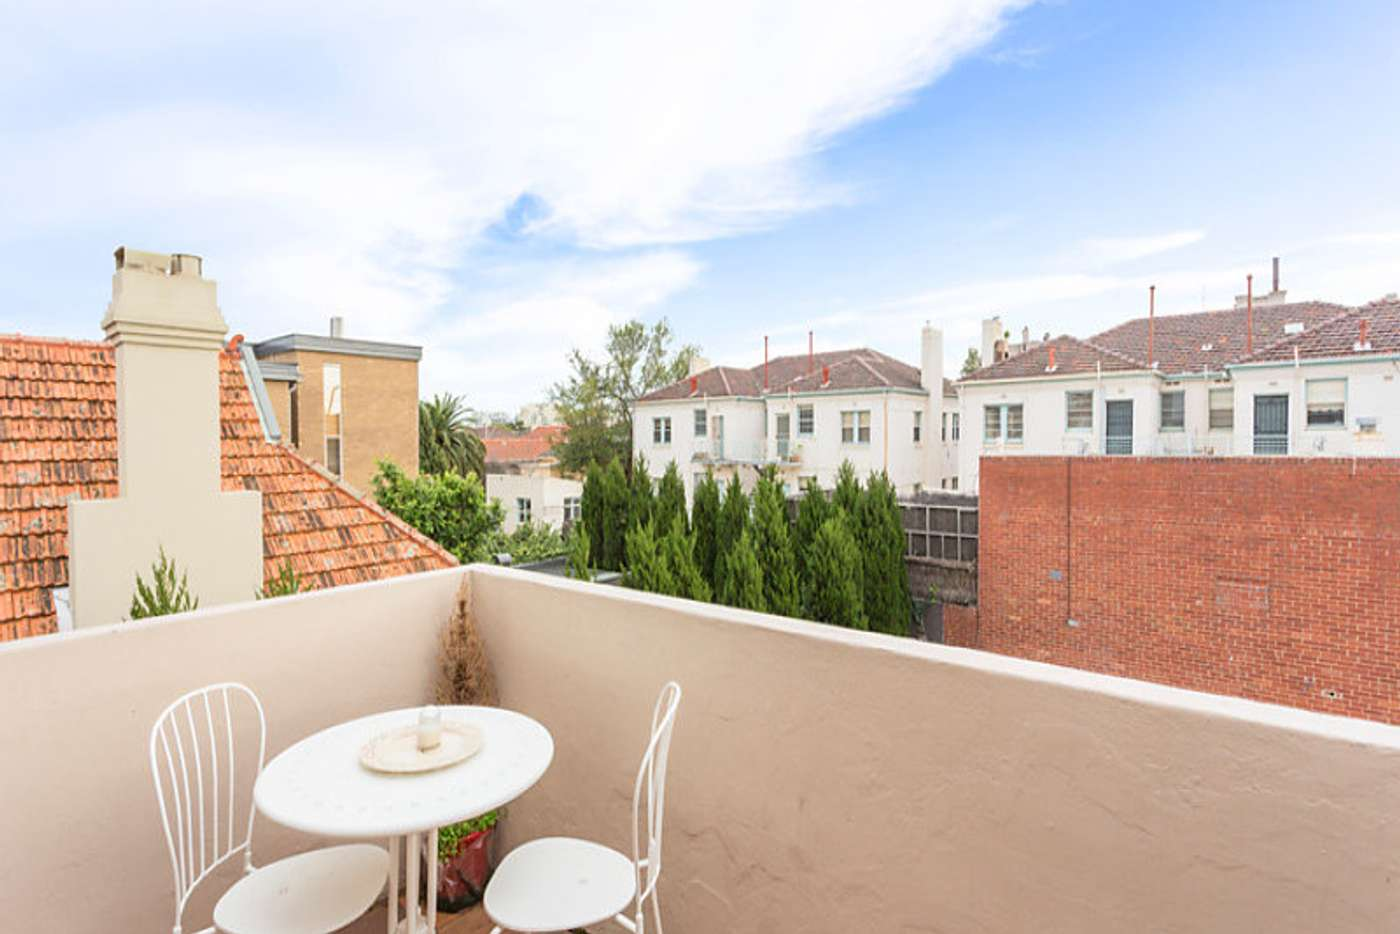 Main view of Homely apartment listing, 11/41 Walsh Street, South Yarra VIC 3141